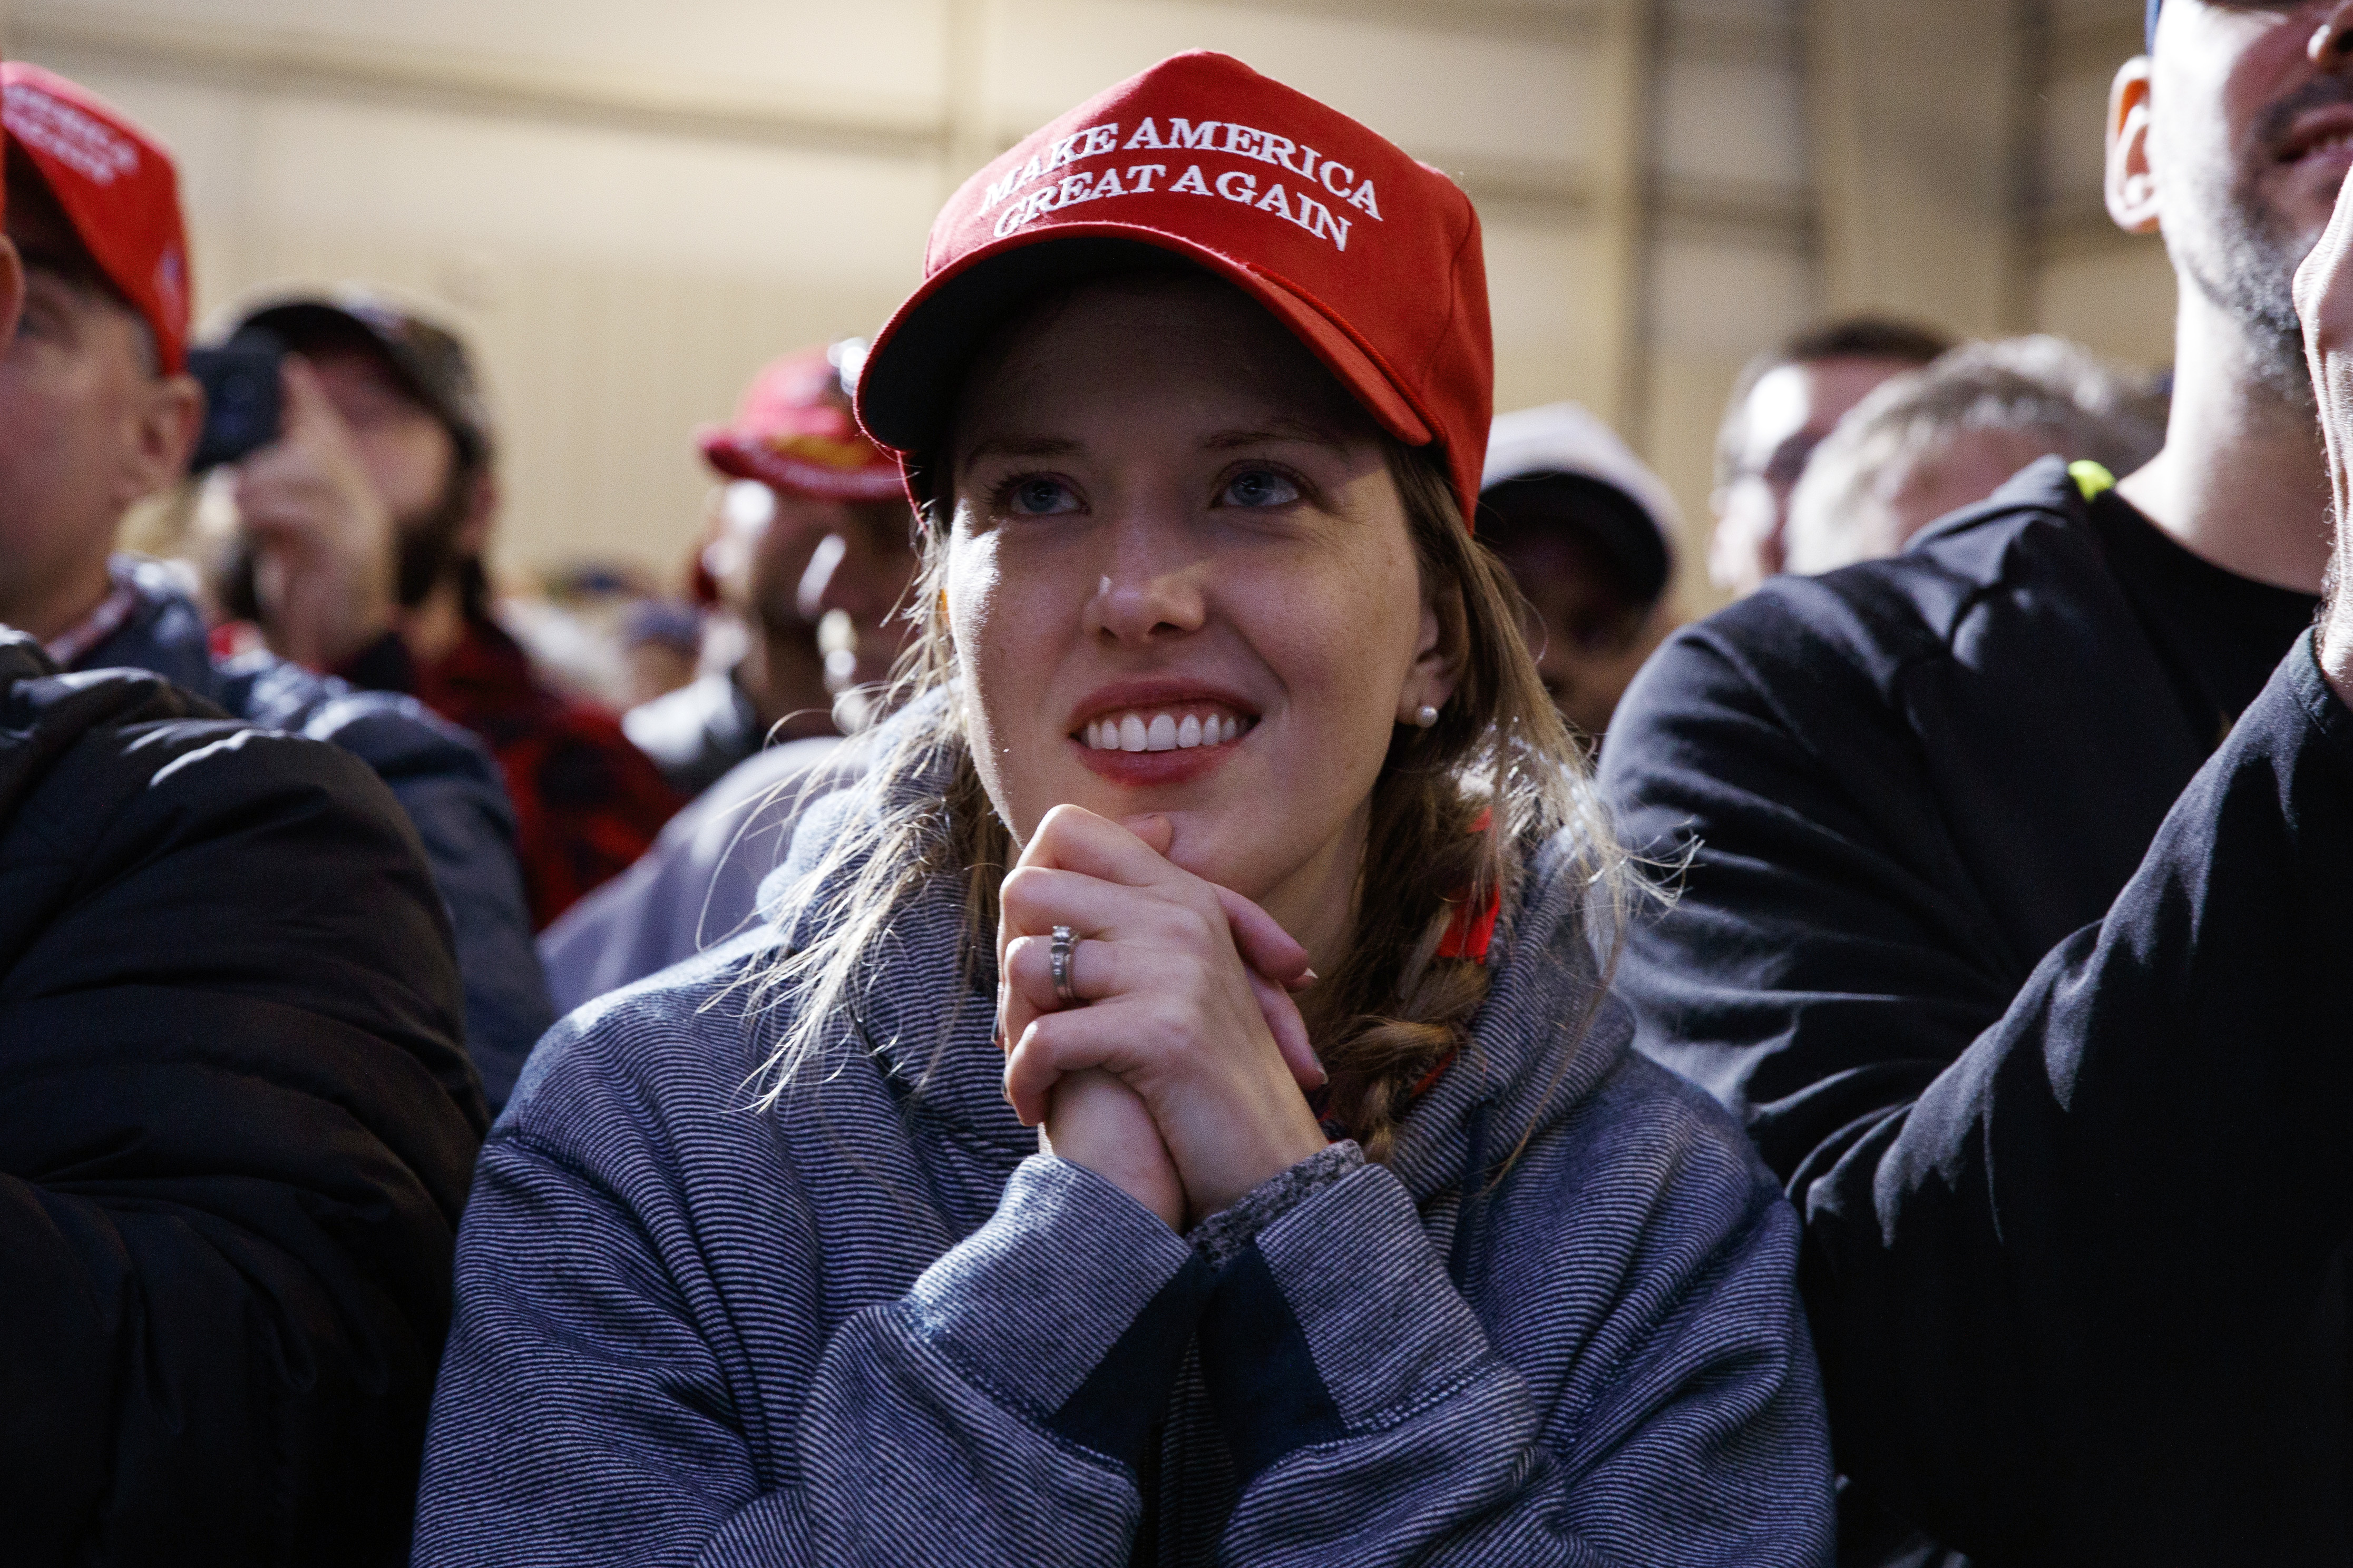 Supporters of President Donald Trump listen to him speak during a campaign rally at Columbia Regional Airport, Nov. 1, 2018, in Columbia, Mo.